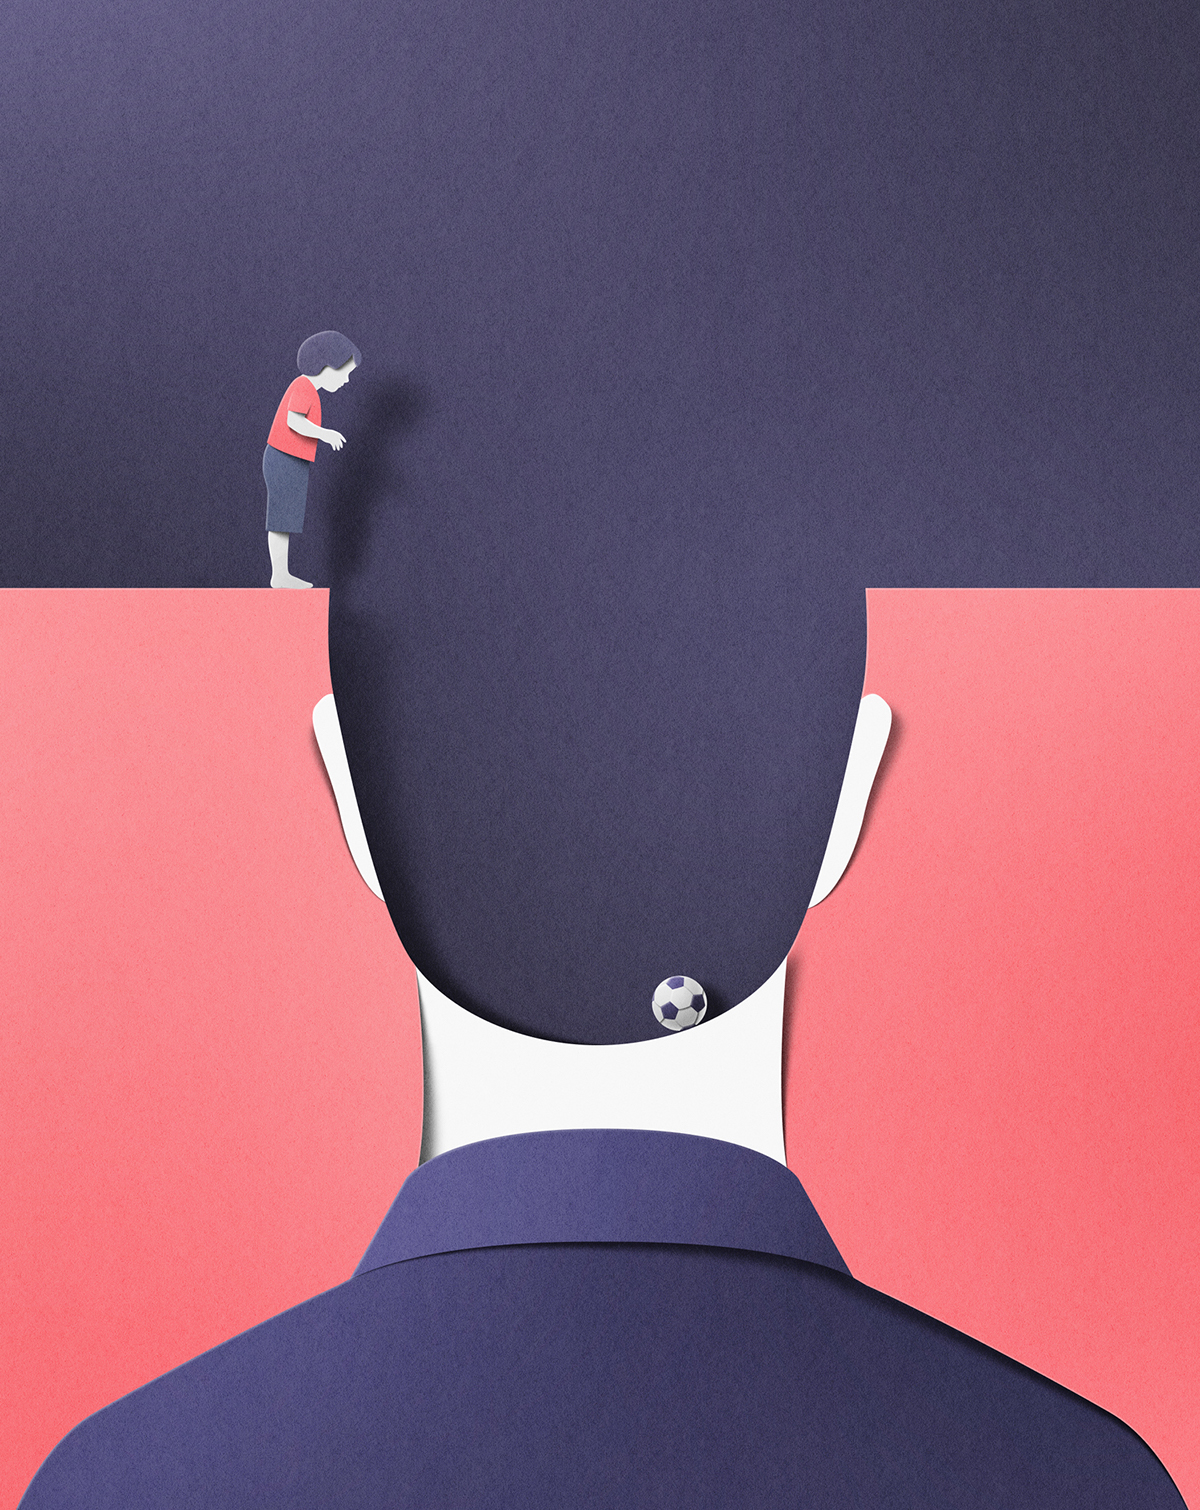 Eiko Ojala – Digital art – Editorial illustrations